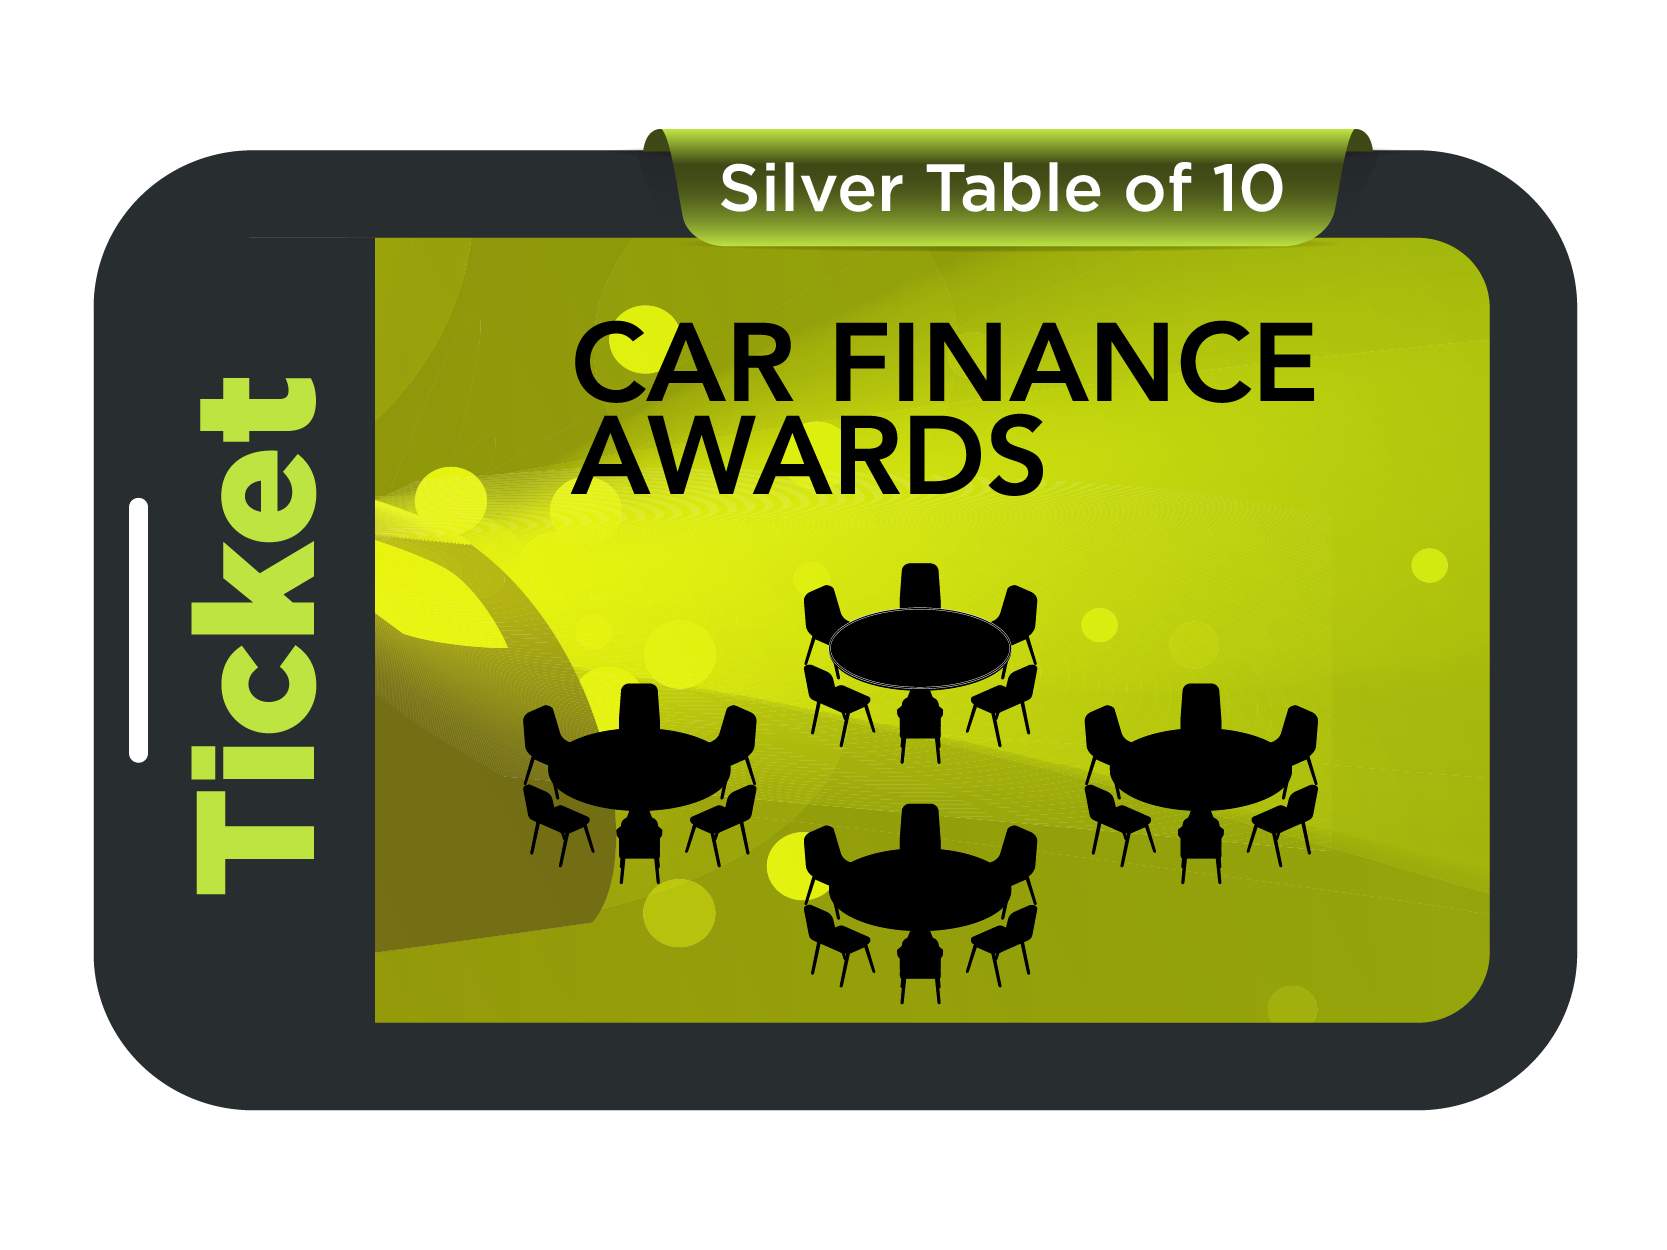 Silver Table of 10 - Car Finance Awards 2021